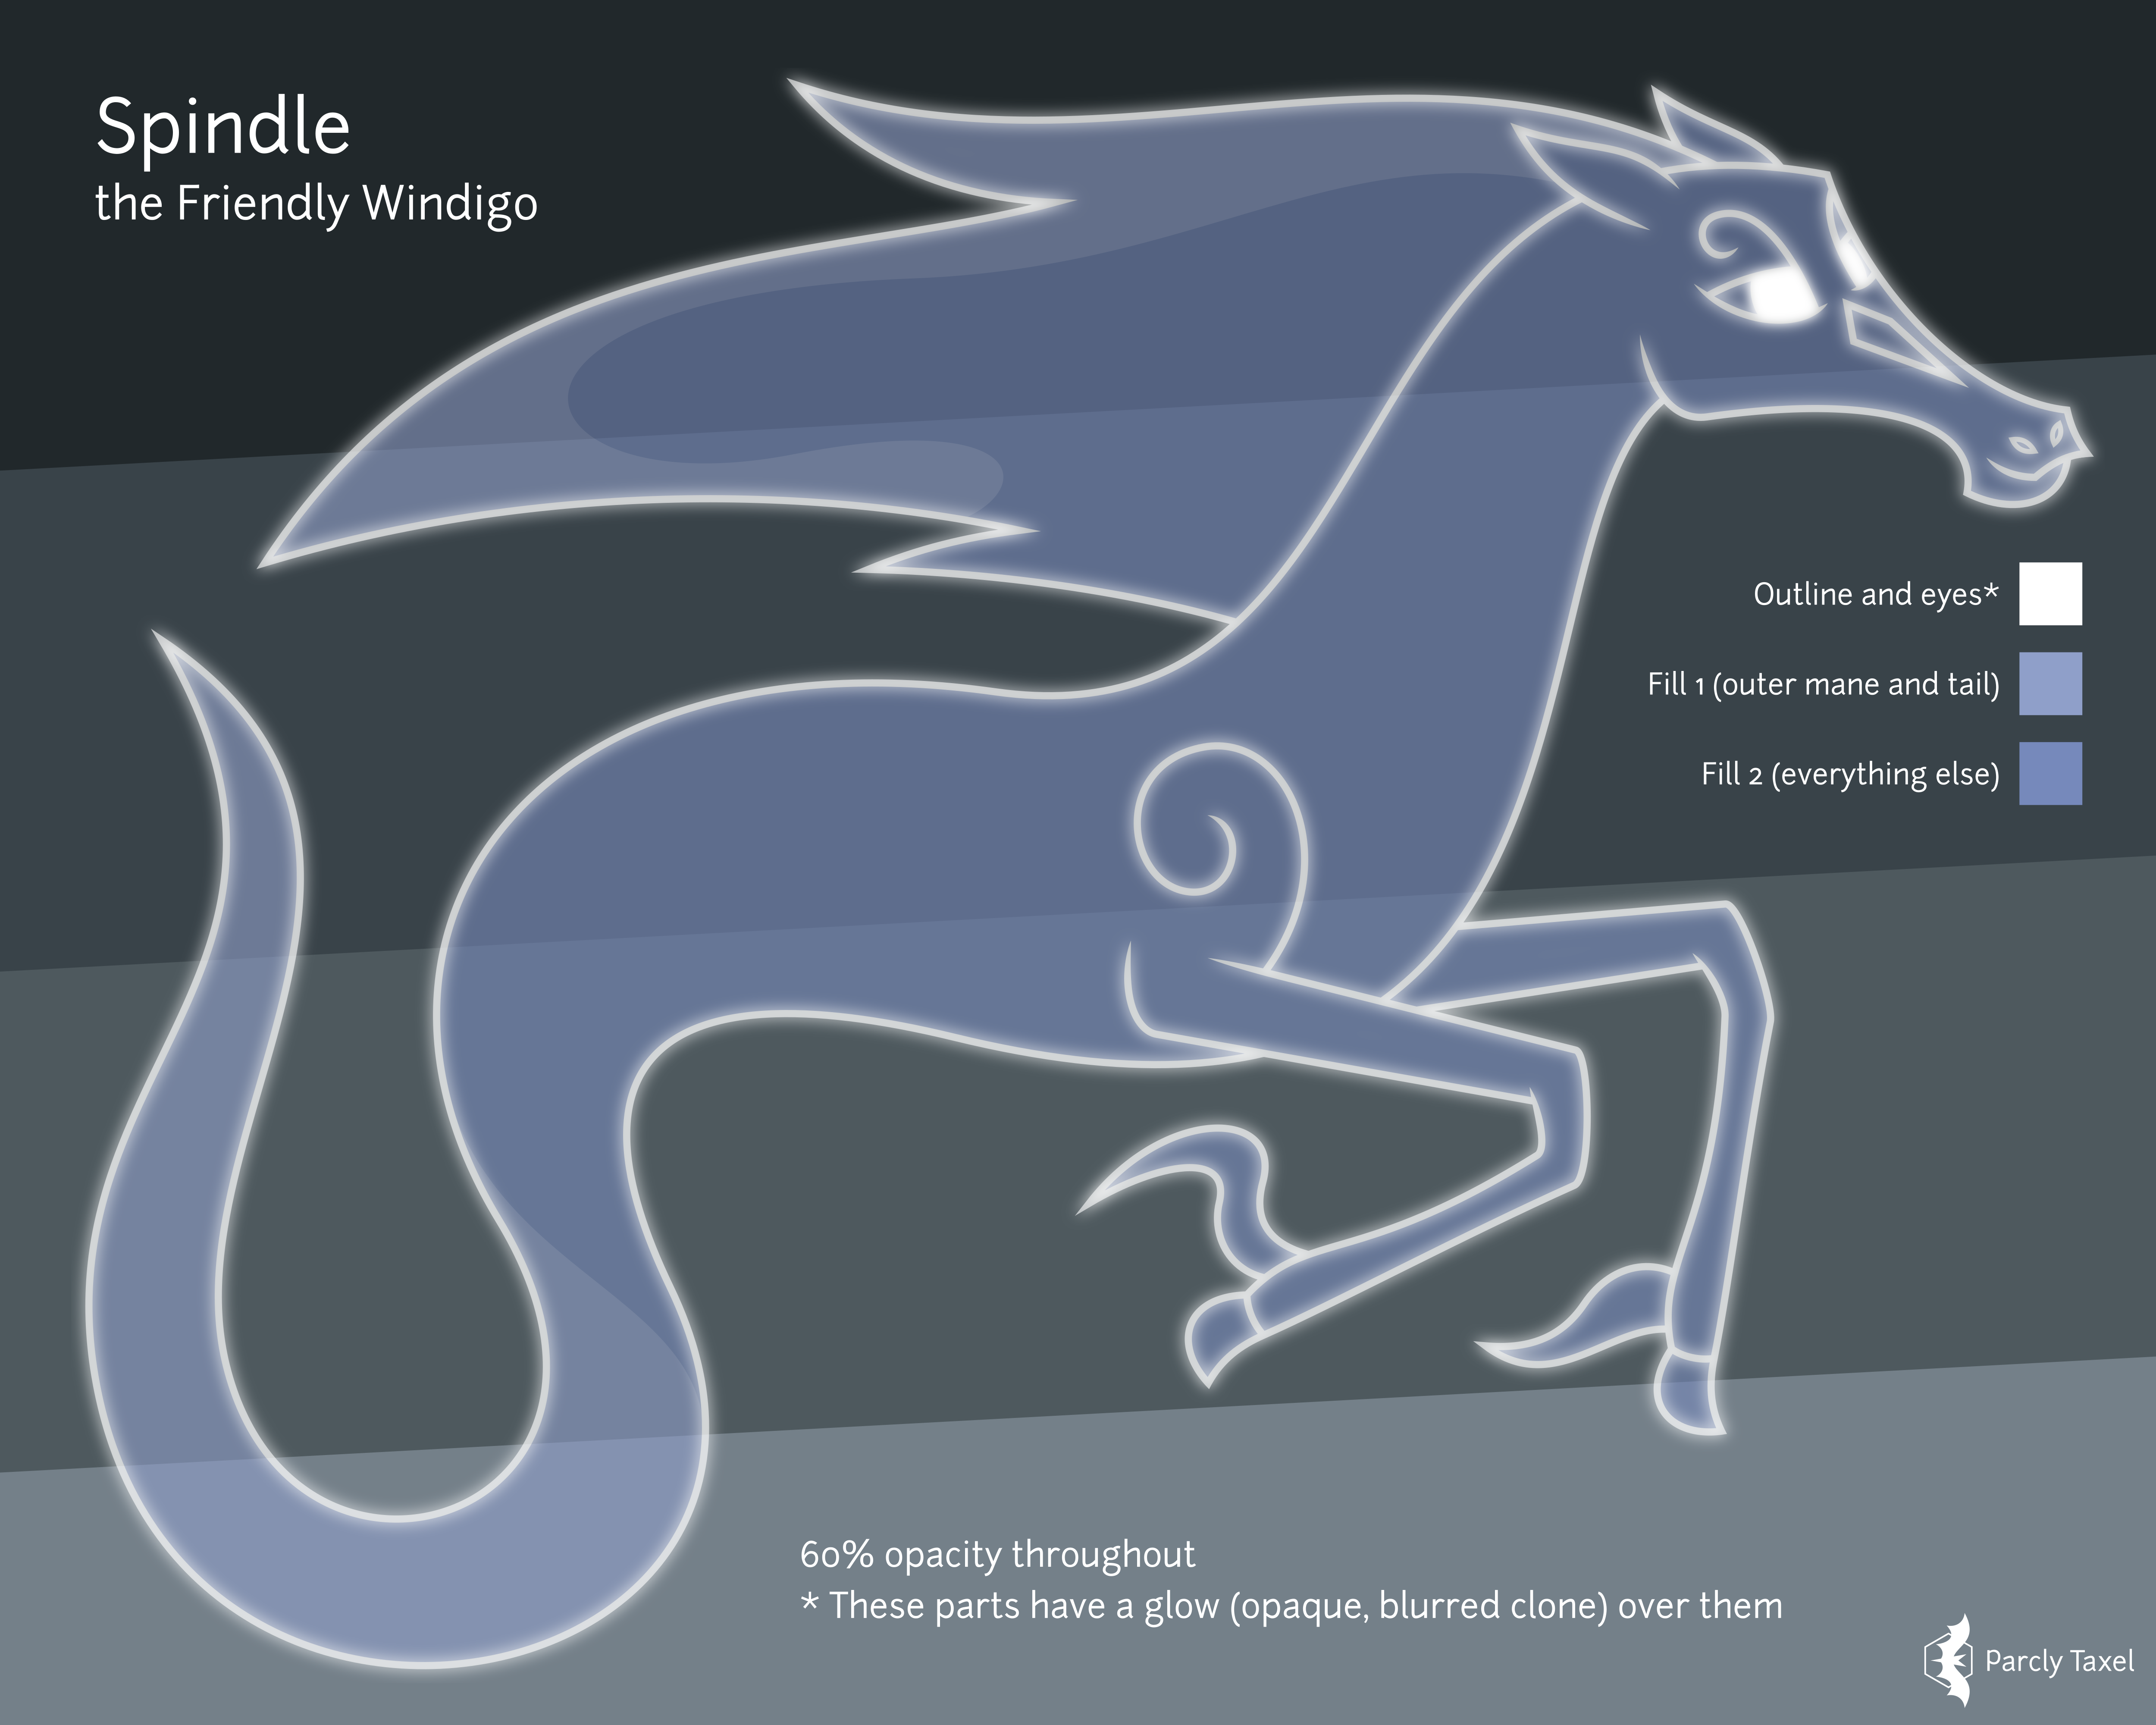 Spindle's ref sheet